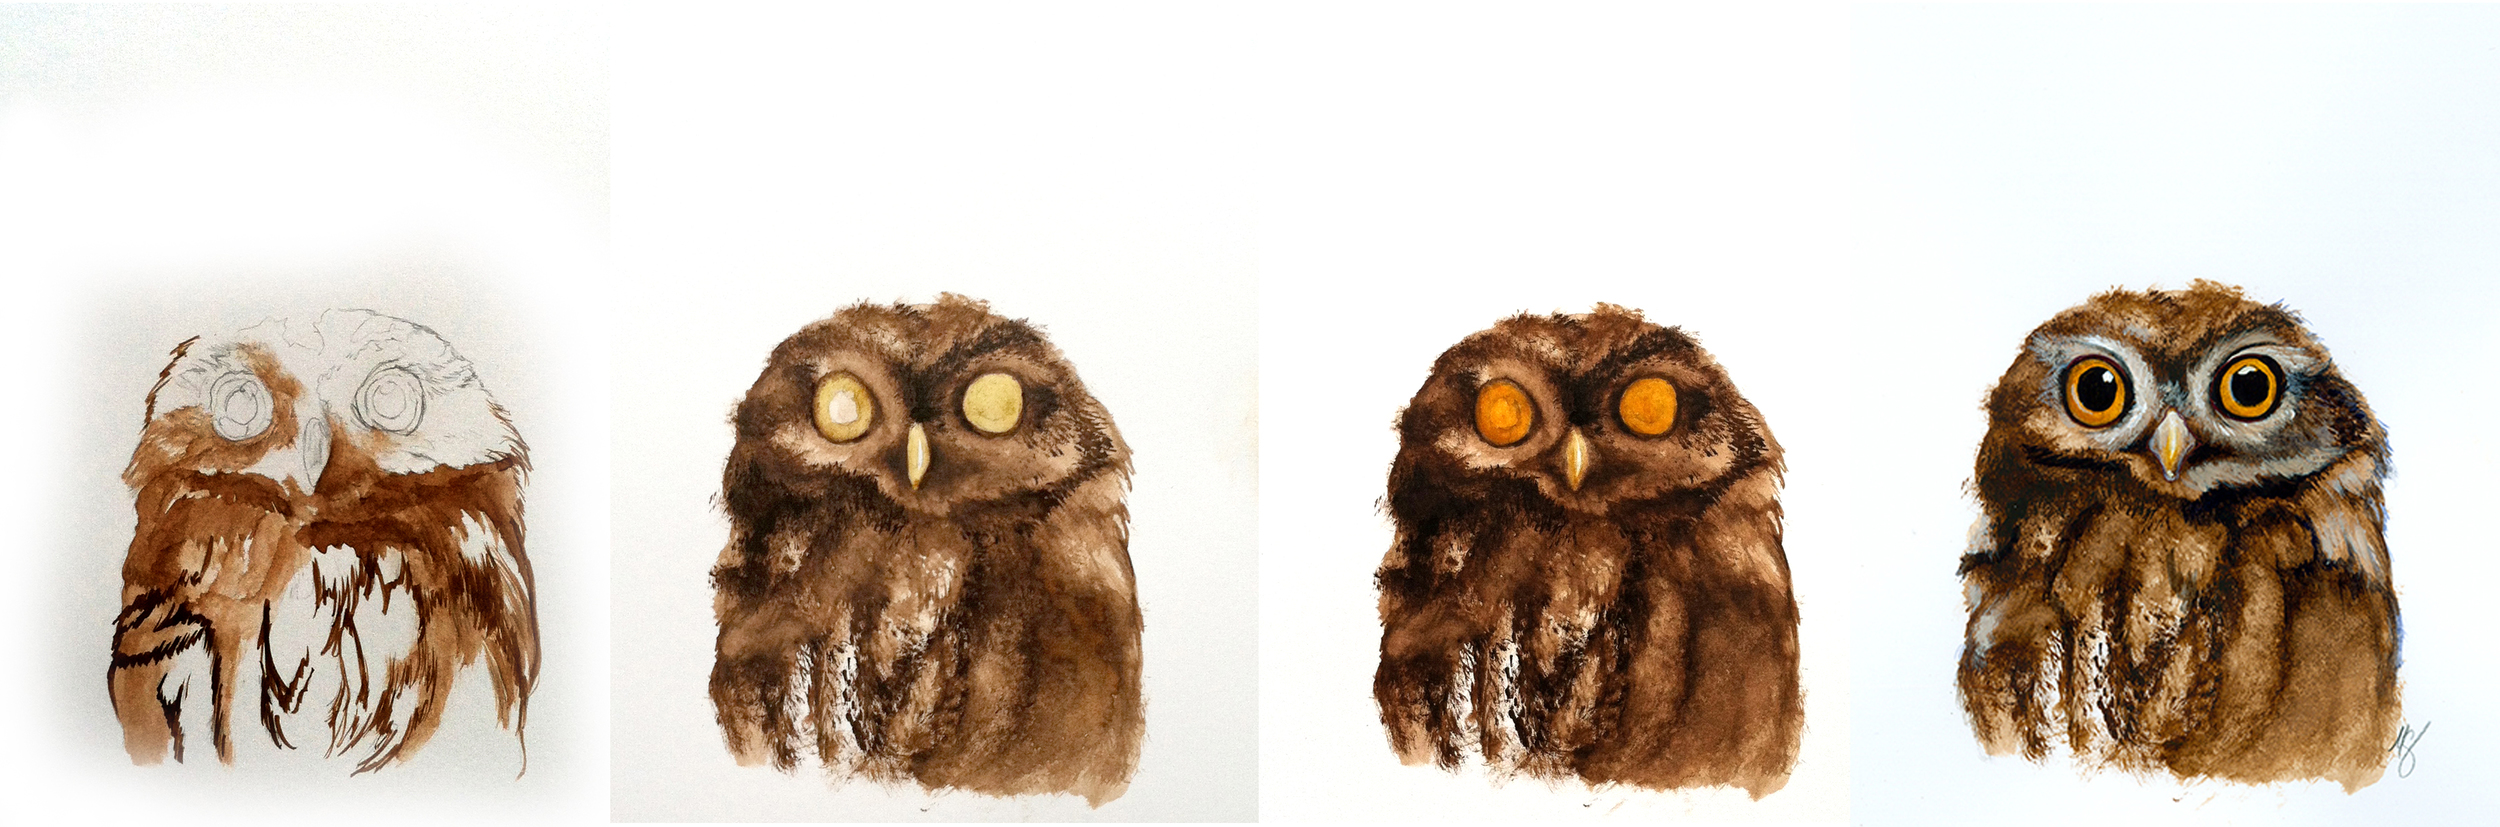 Here is a progression of the little Owl .. I started with a pencil sketch from a picture of a baby owl and then built up his ruffled feathers in watercolor…Those yellow eyes really pop due to the contrast!